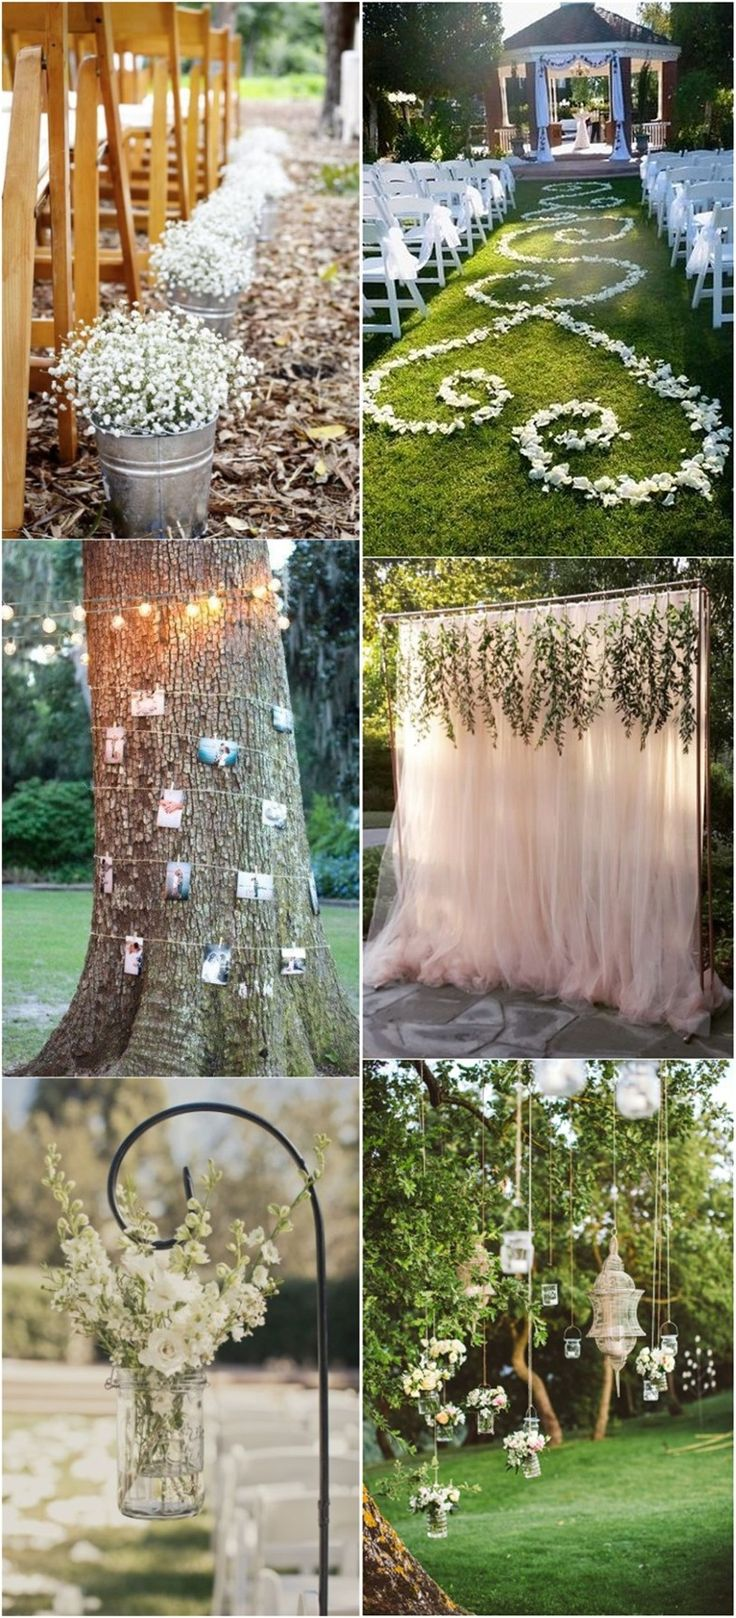 best Wedding Day images on Pinterest  Weddings Wedding ideas